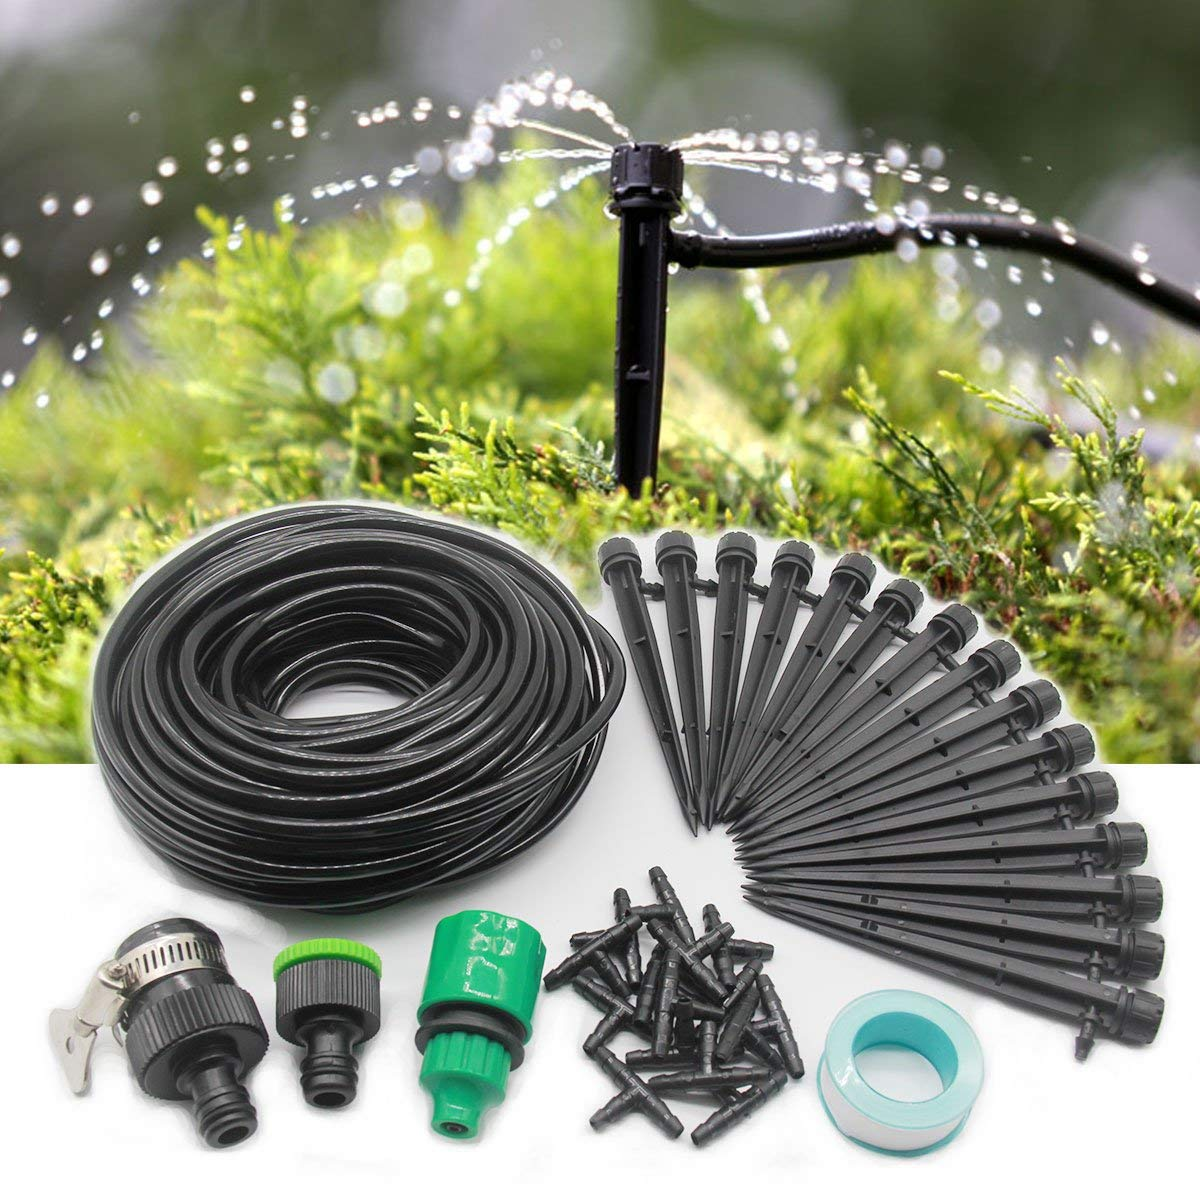 Rain Bird CNV2XBIRD Drip Irrigation Conversion Kit, 1//2